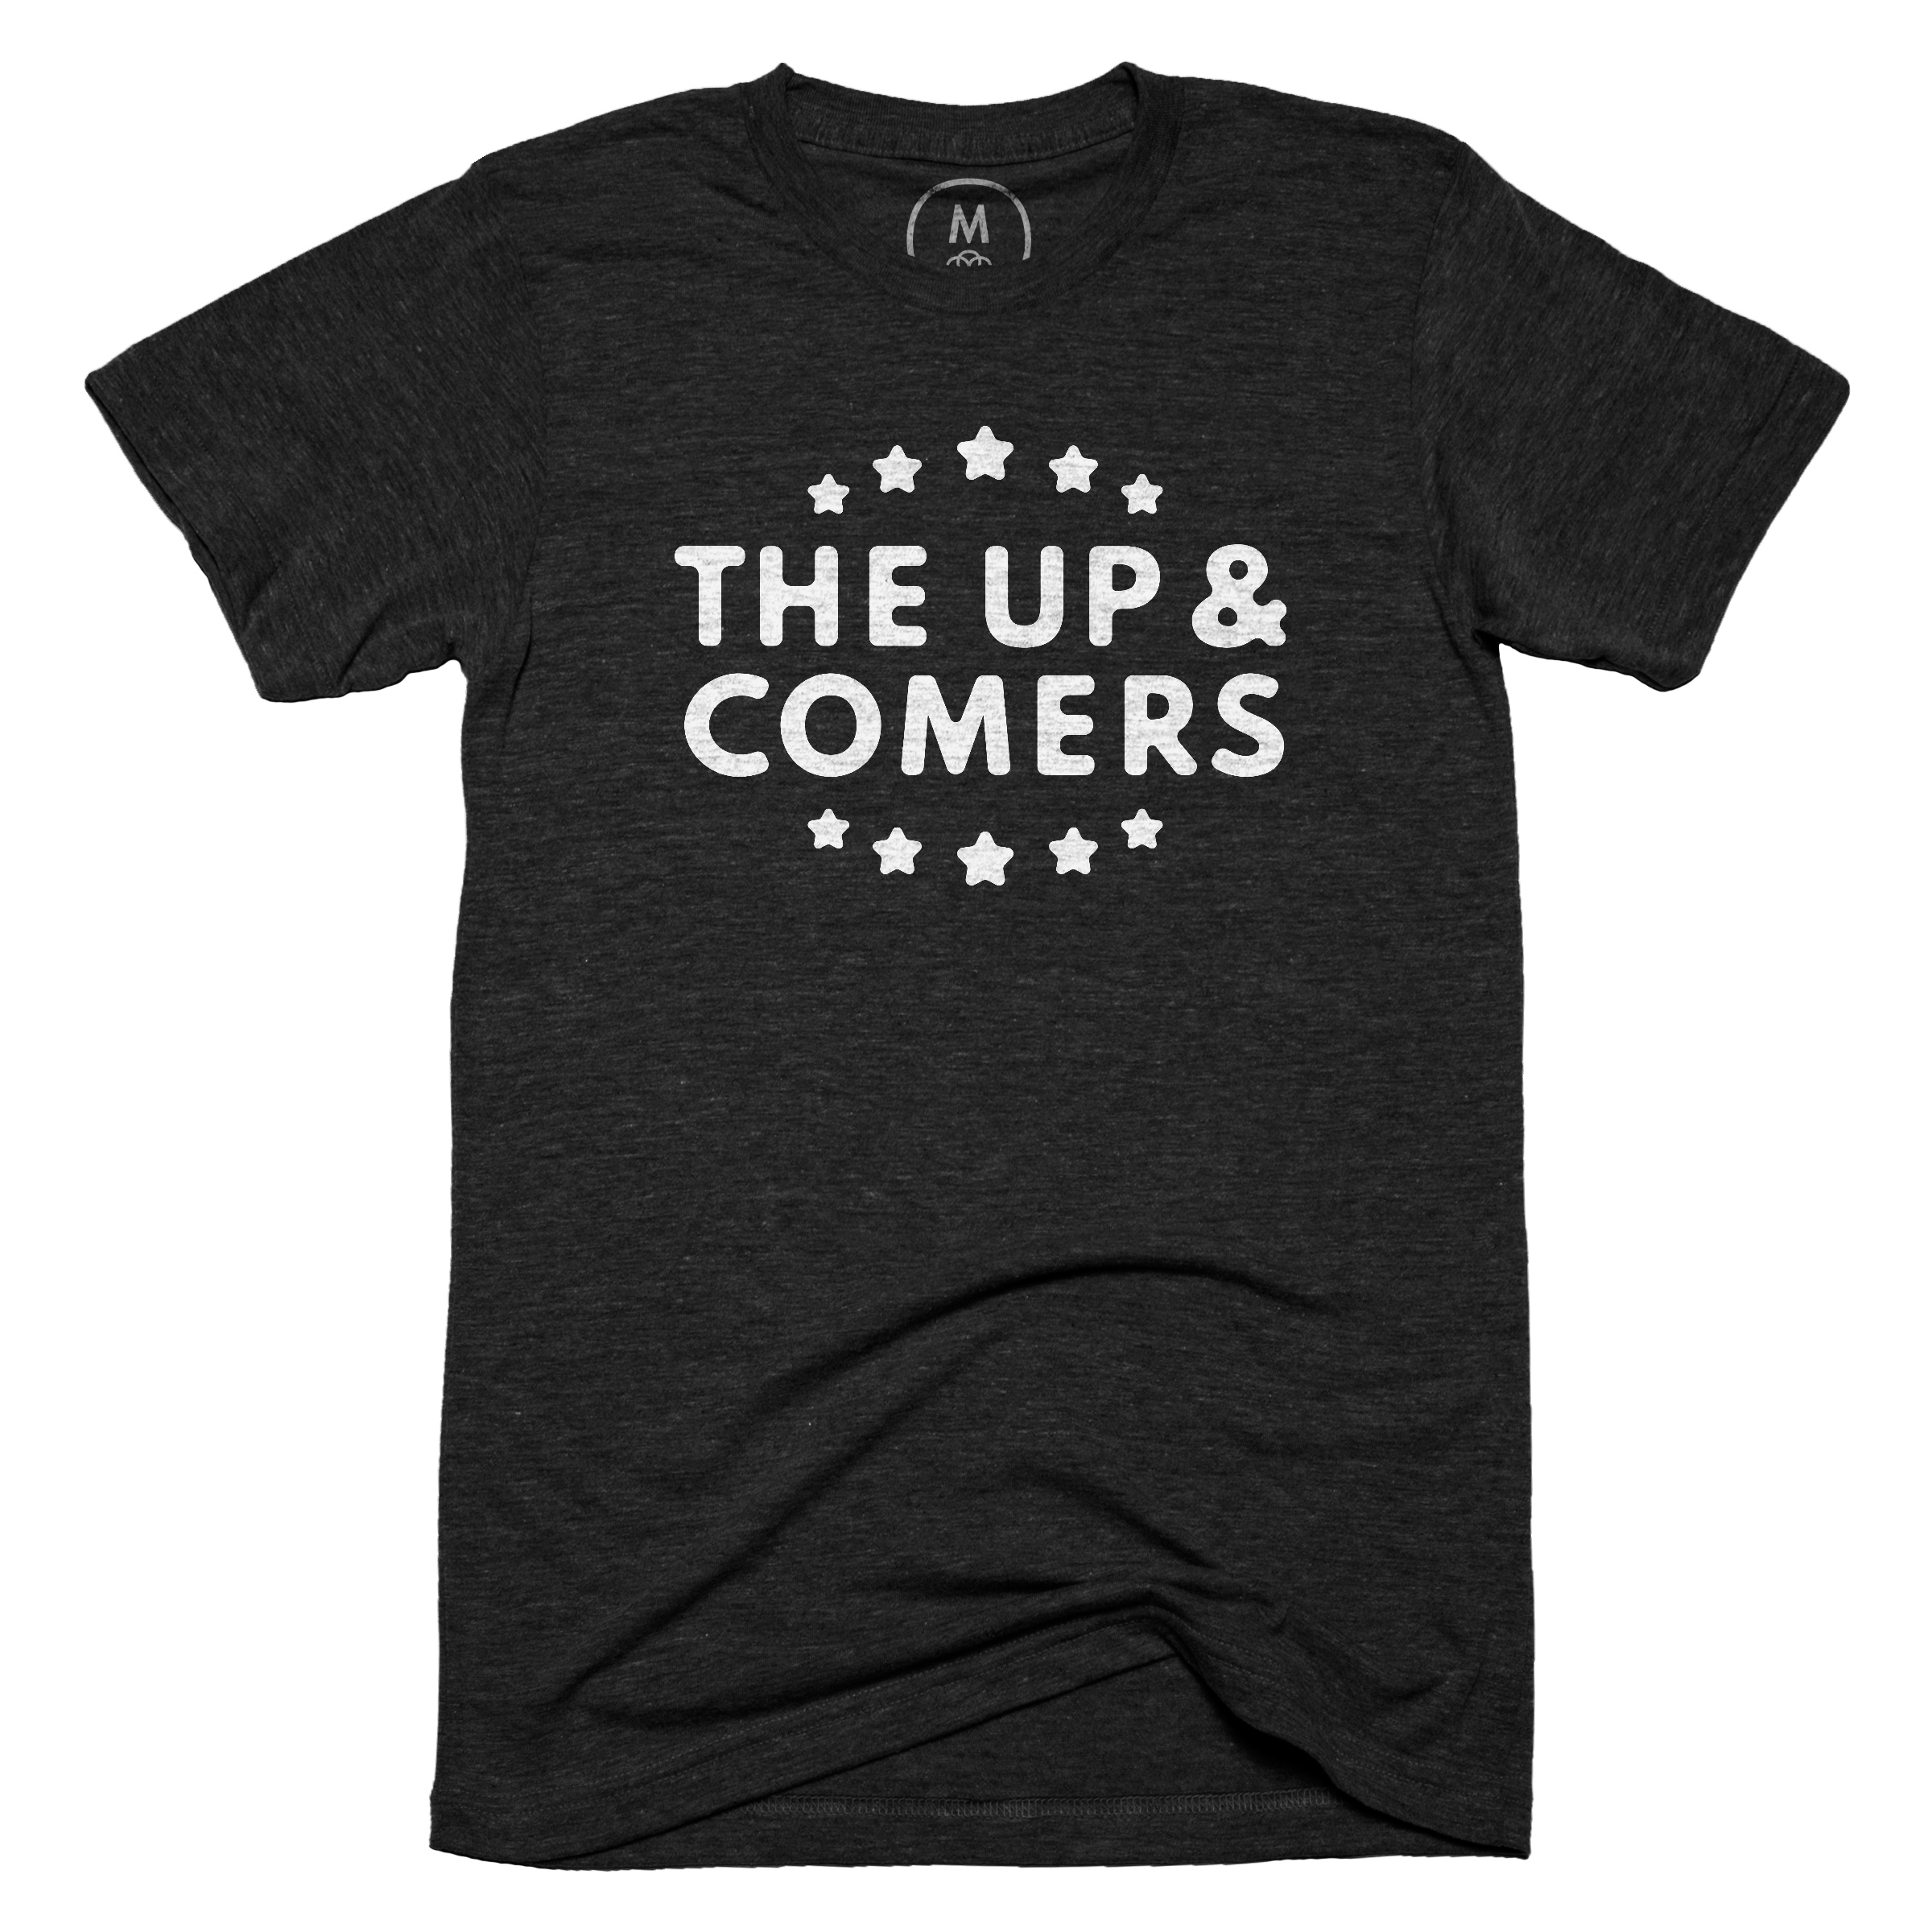 The Up & Comers Show